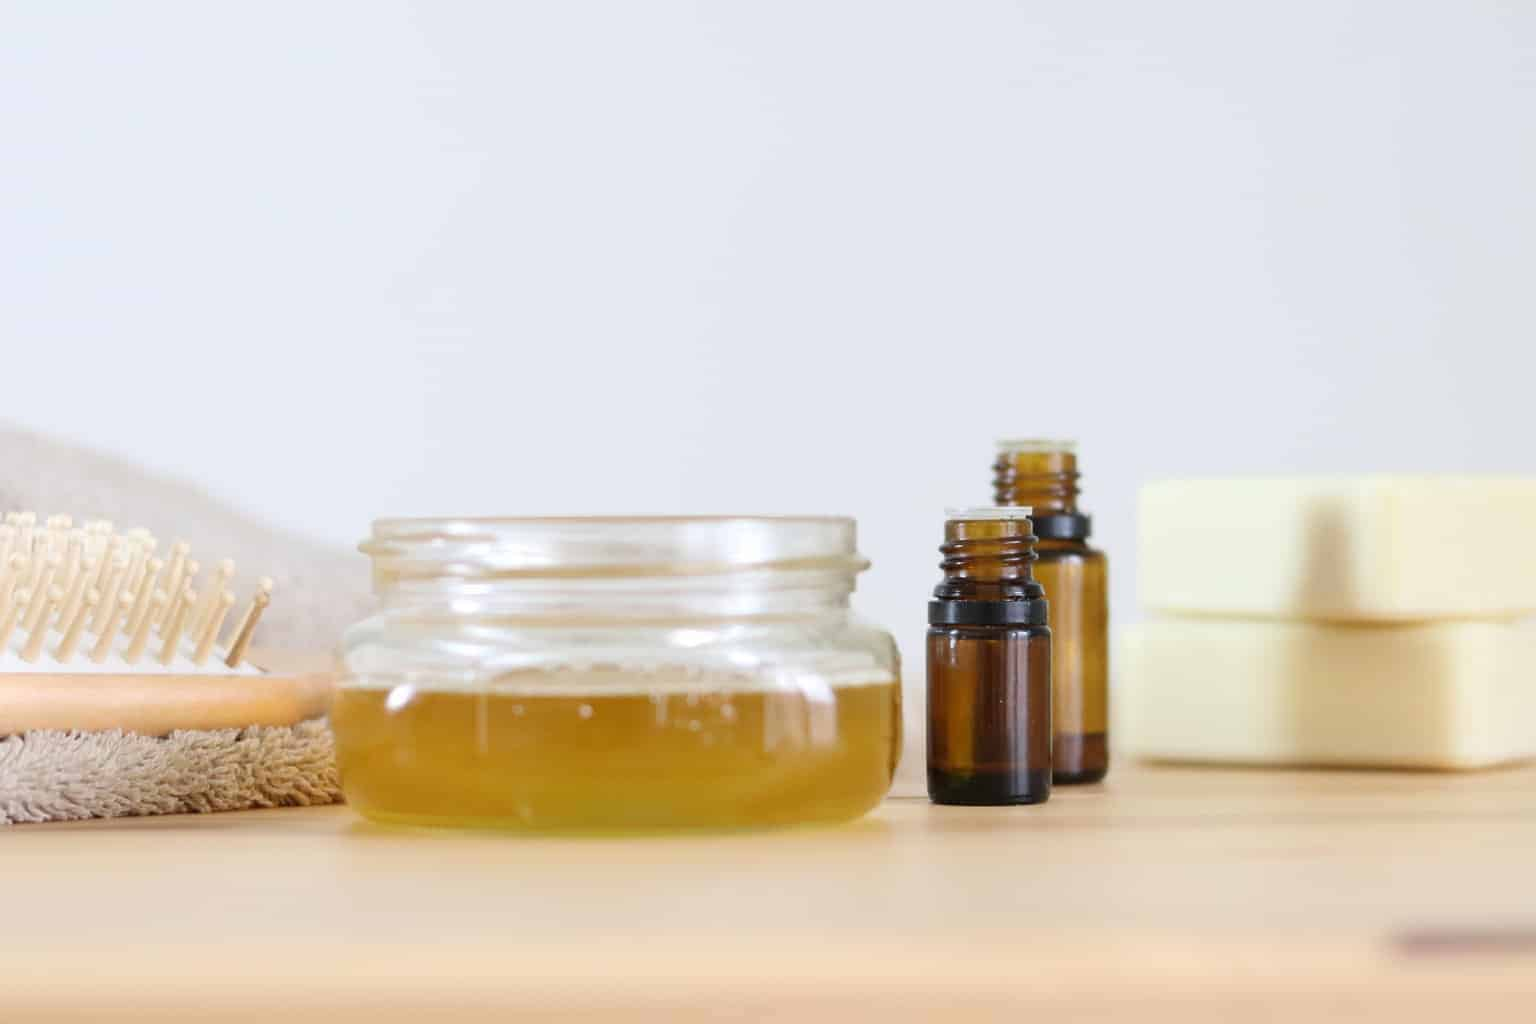 Homemade conditioner in mason jar and essential oil bottles on wooden table.